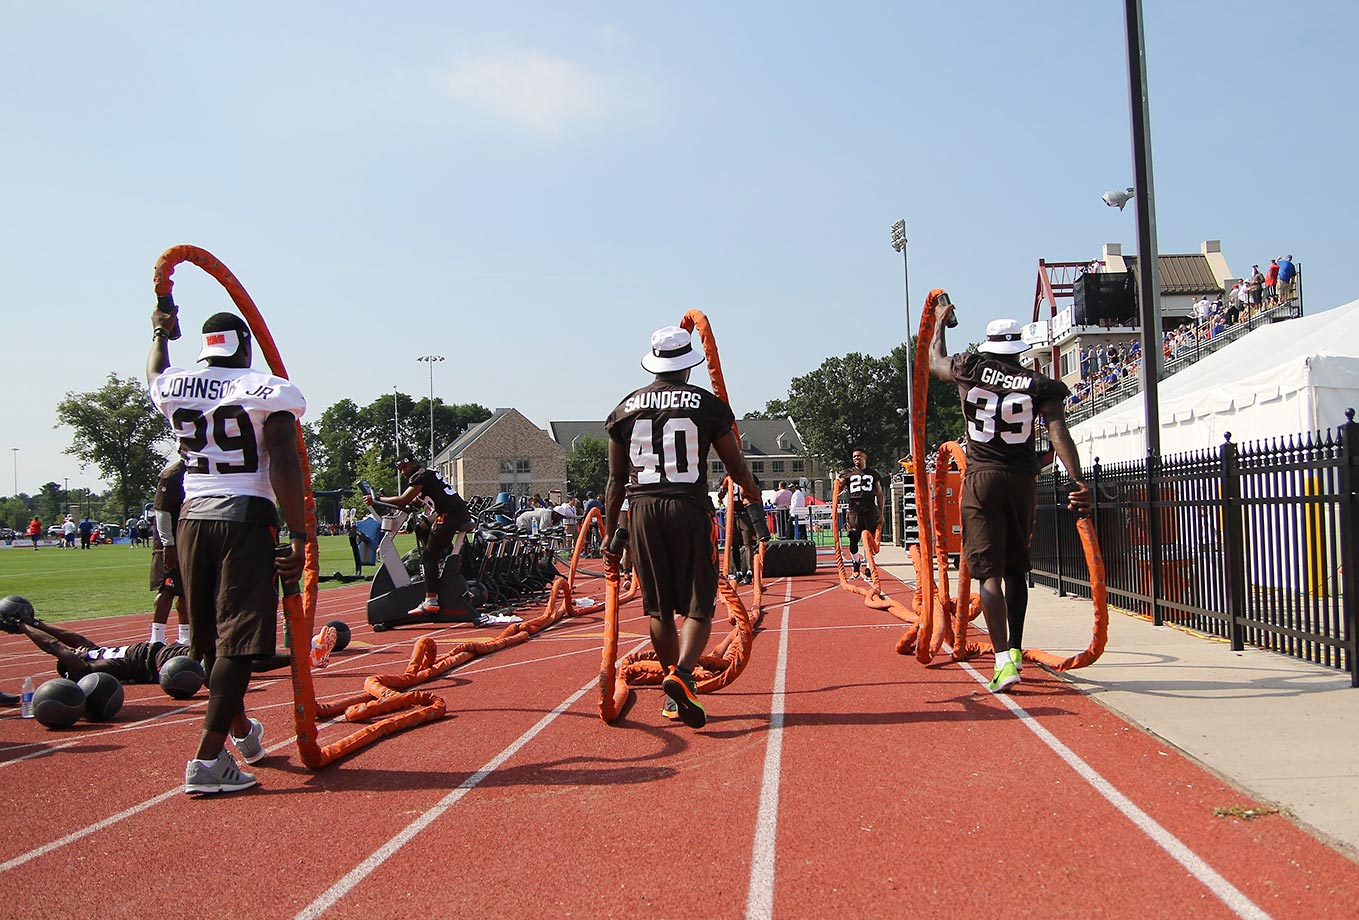 Cleveland running back Duke Johnson Jr., (29), defensive back De'Ante Saunders (40) and defensive back Tashaun Gipson (39) work out at St. John Fisher College in Pittsford, N.Y.